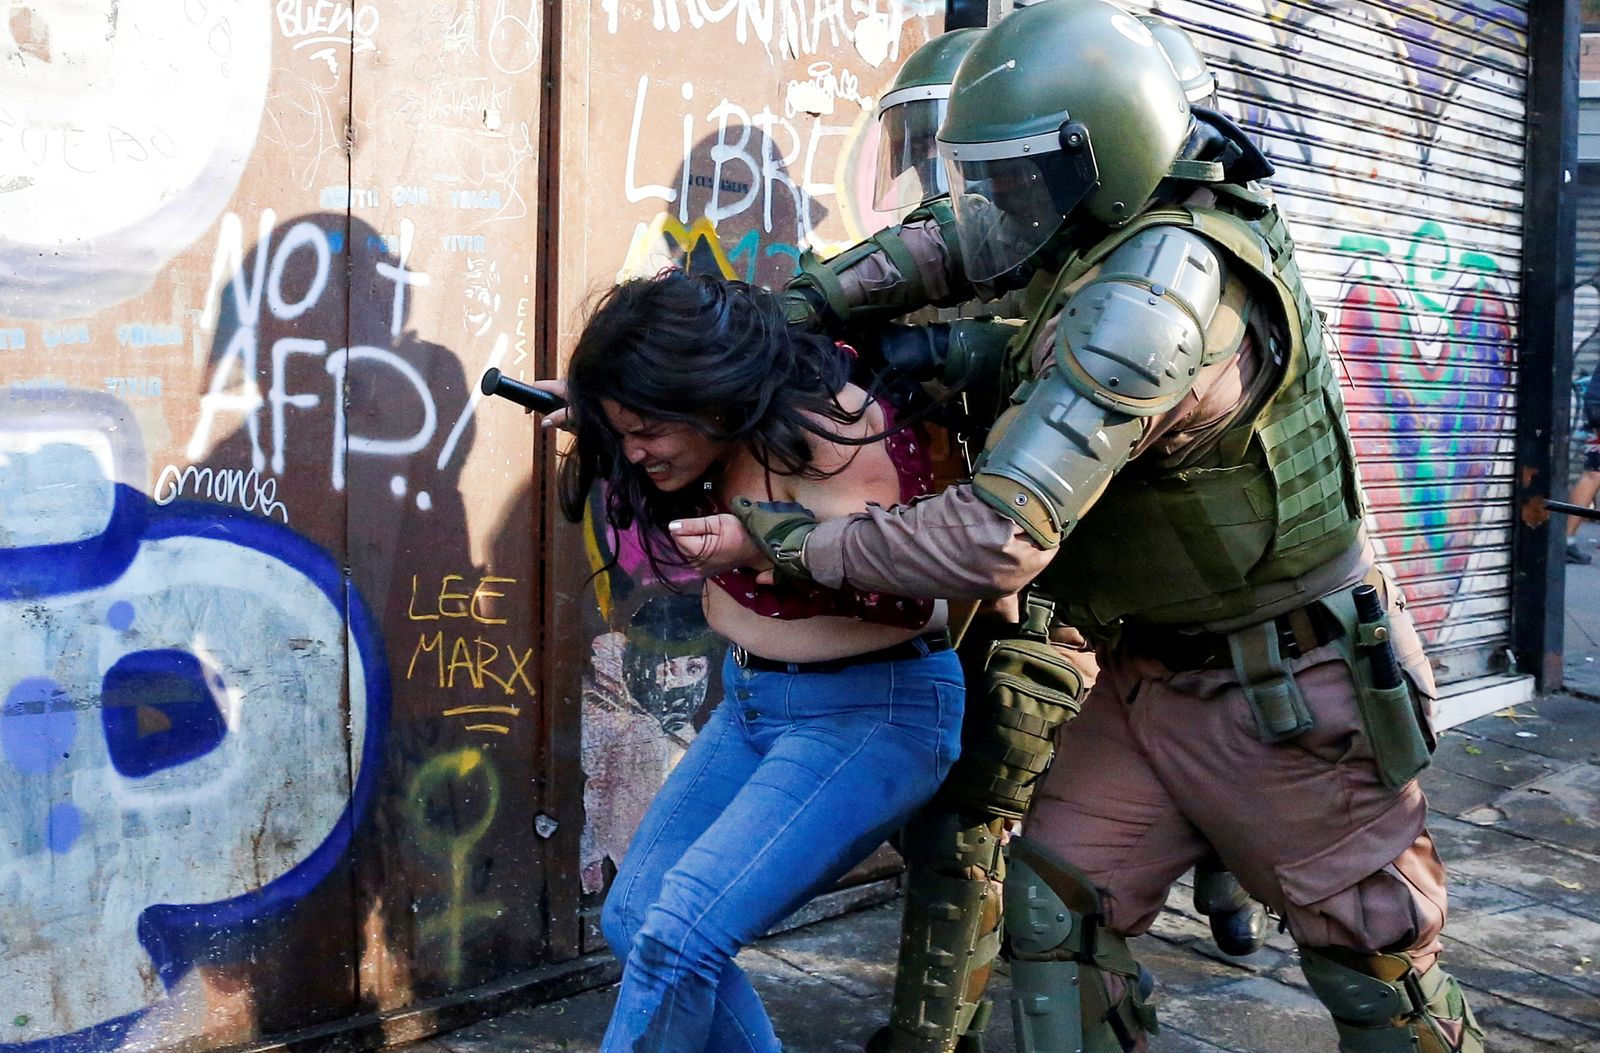 A demonstrator is detained by riot police during a protest against Chile's government in Valparaiso